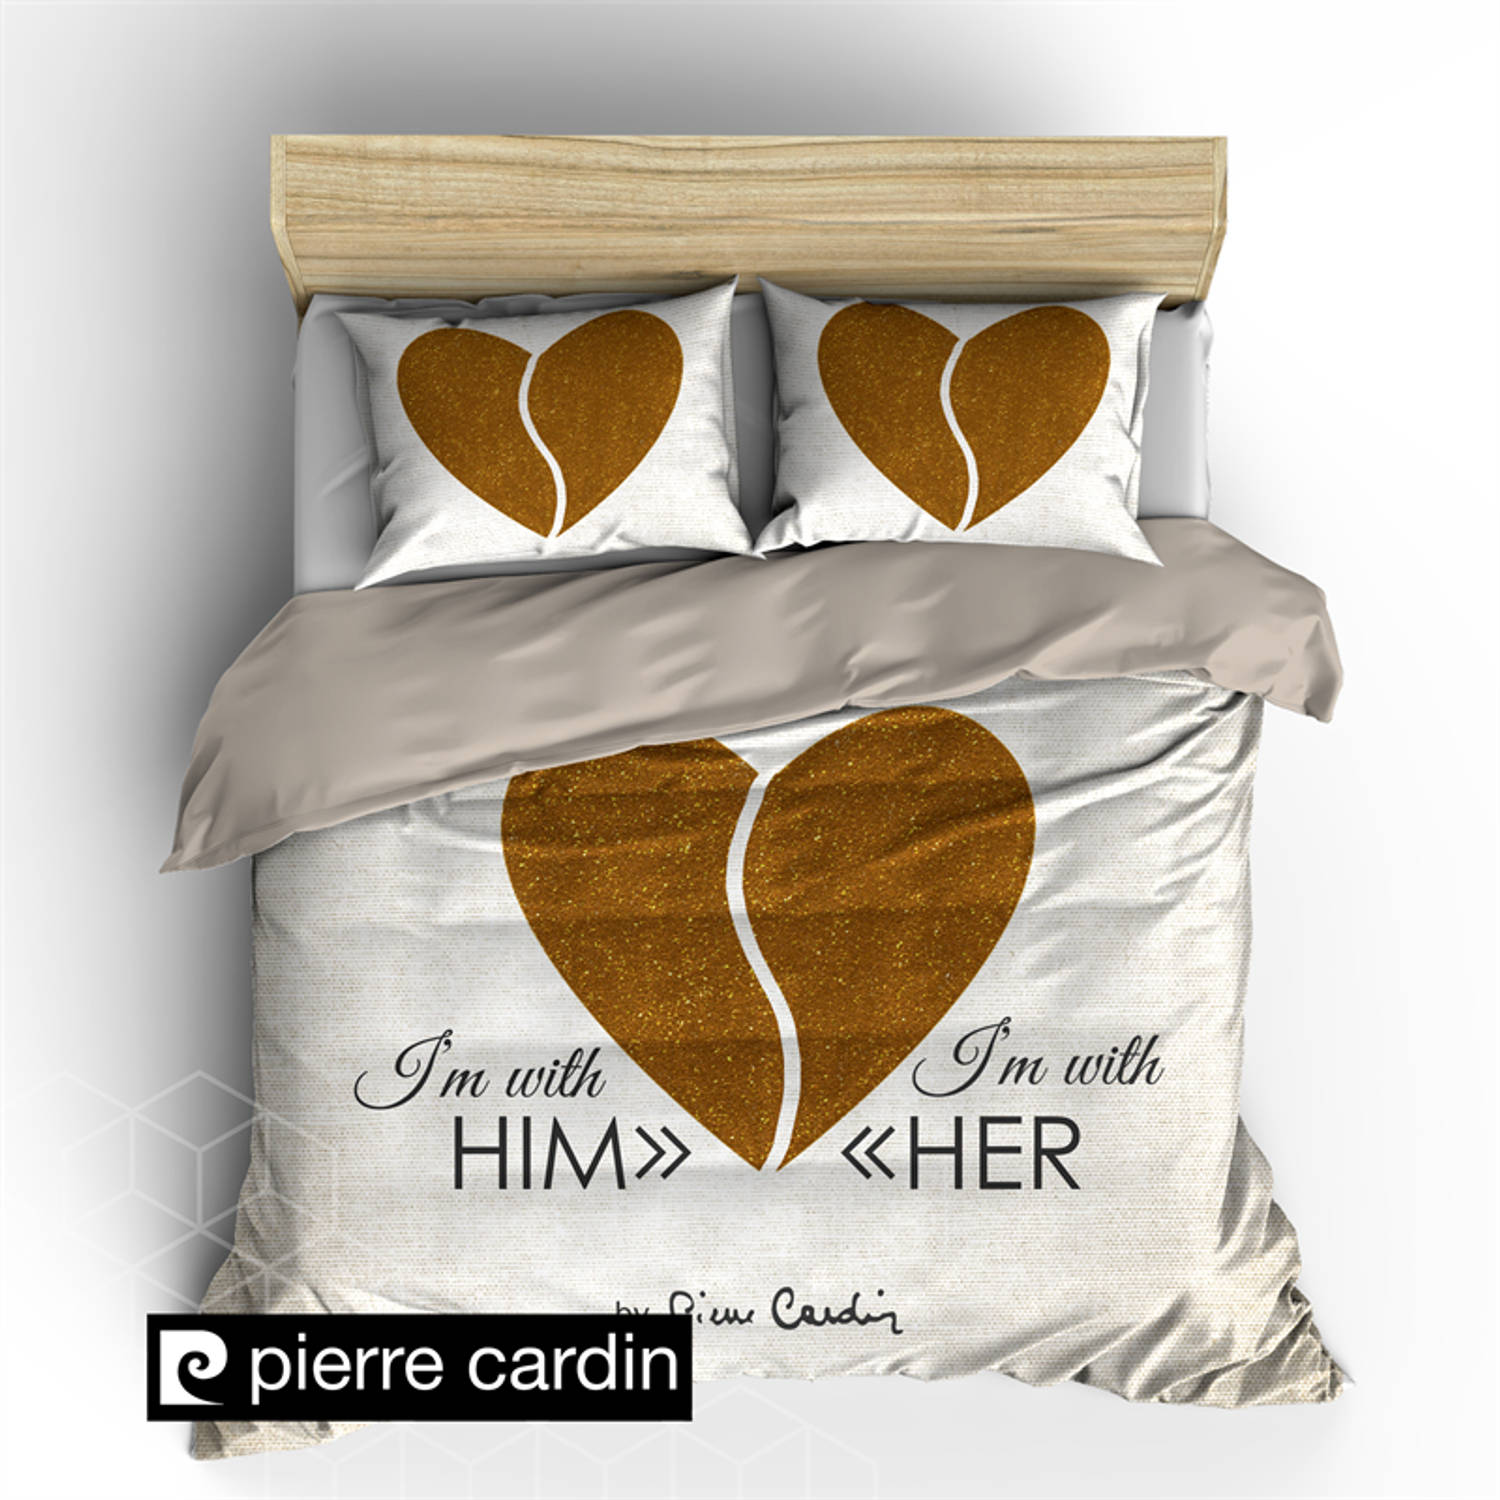 Pierre cardin dekbedovertrek him & her ecru/gold-240x200/220